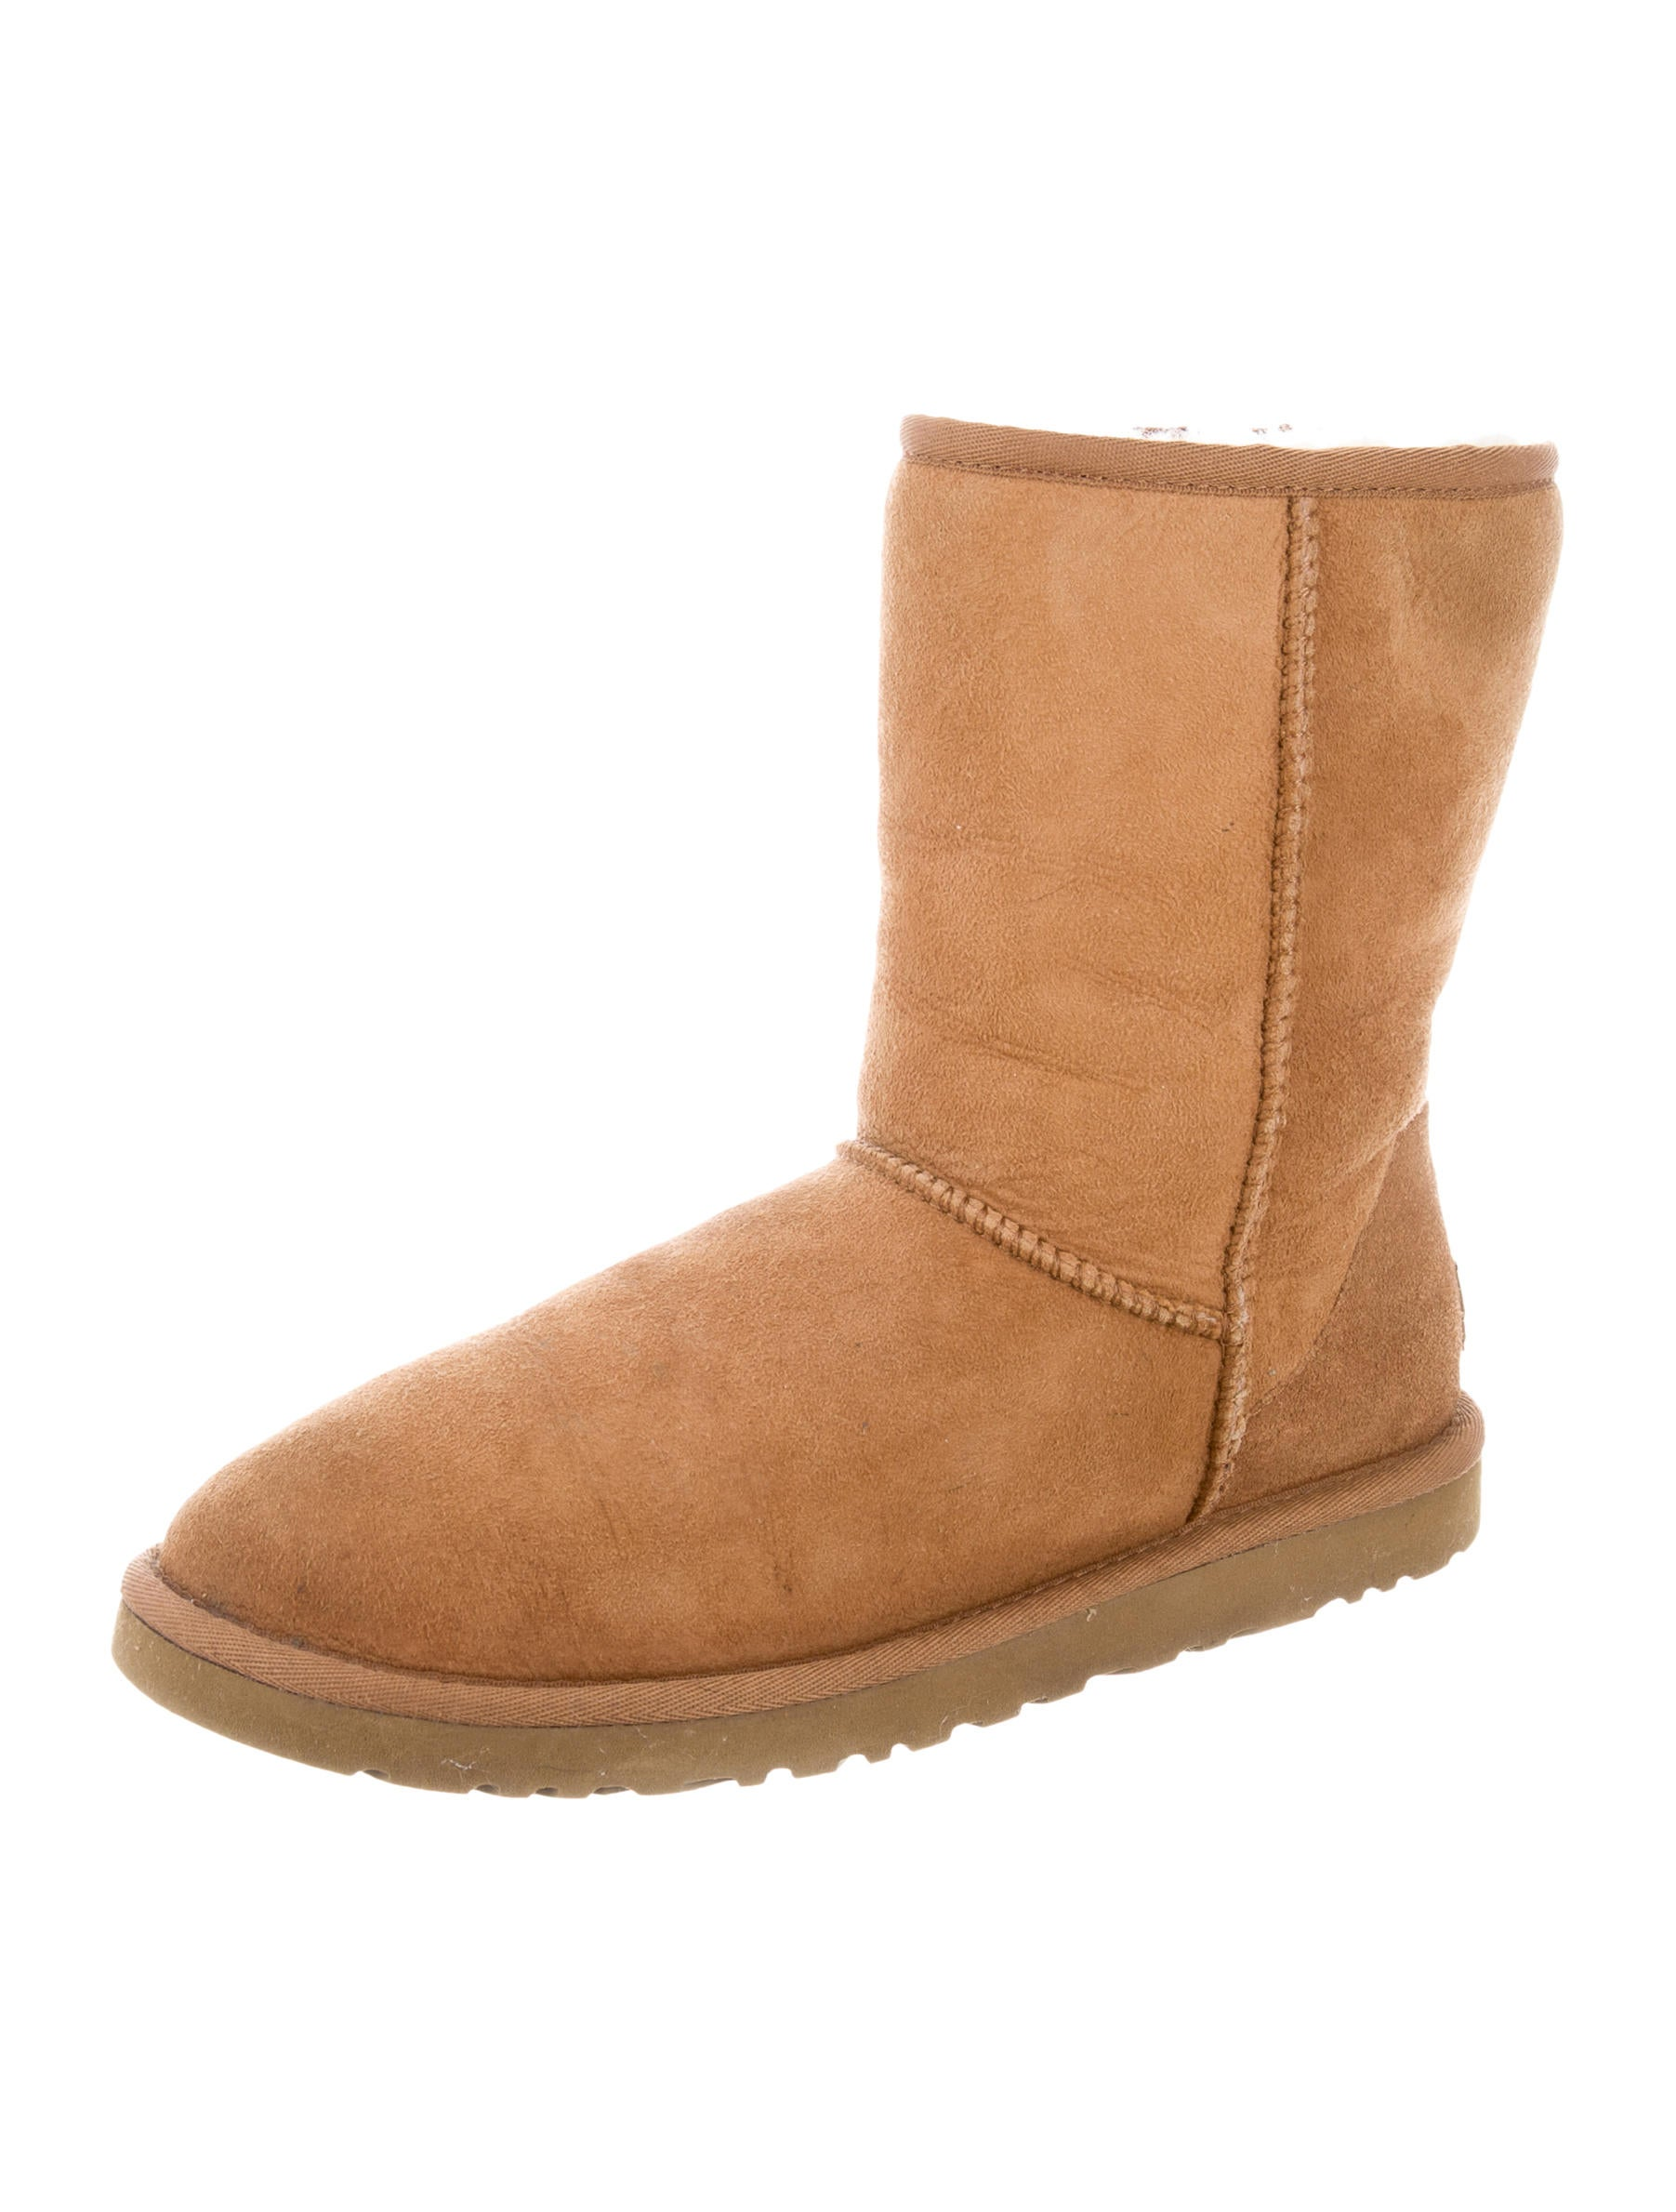 ugg australia suede ankle boots shoes wuugg21997 the